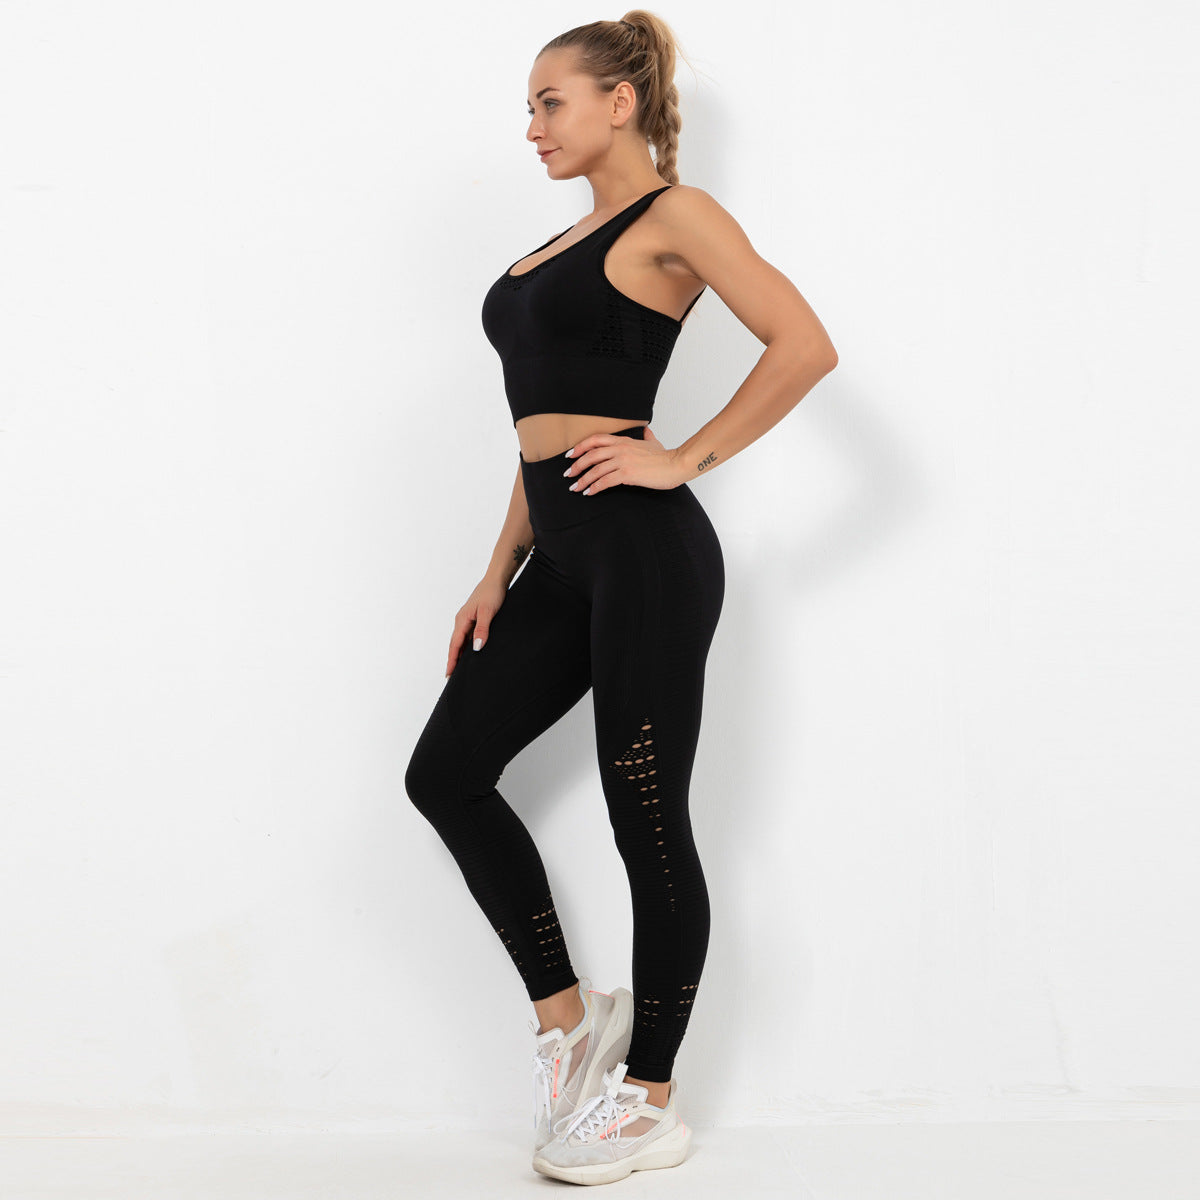 2020 Women Seamless Hollow Out Hip Lift Yoga Suit Sportswear Training Suit Gym SuitYS-038